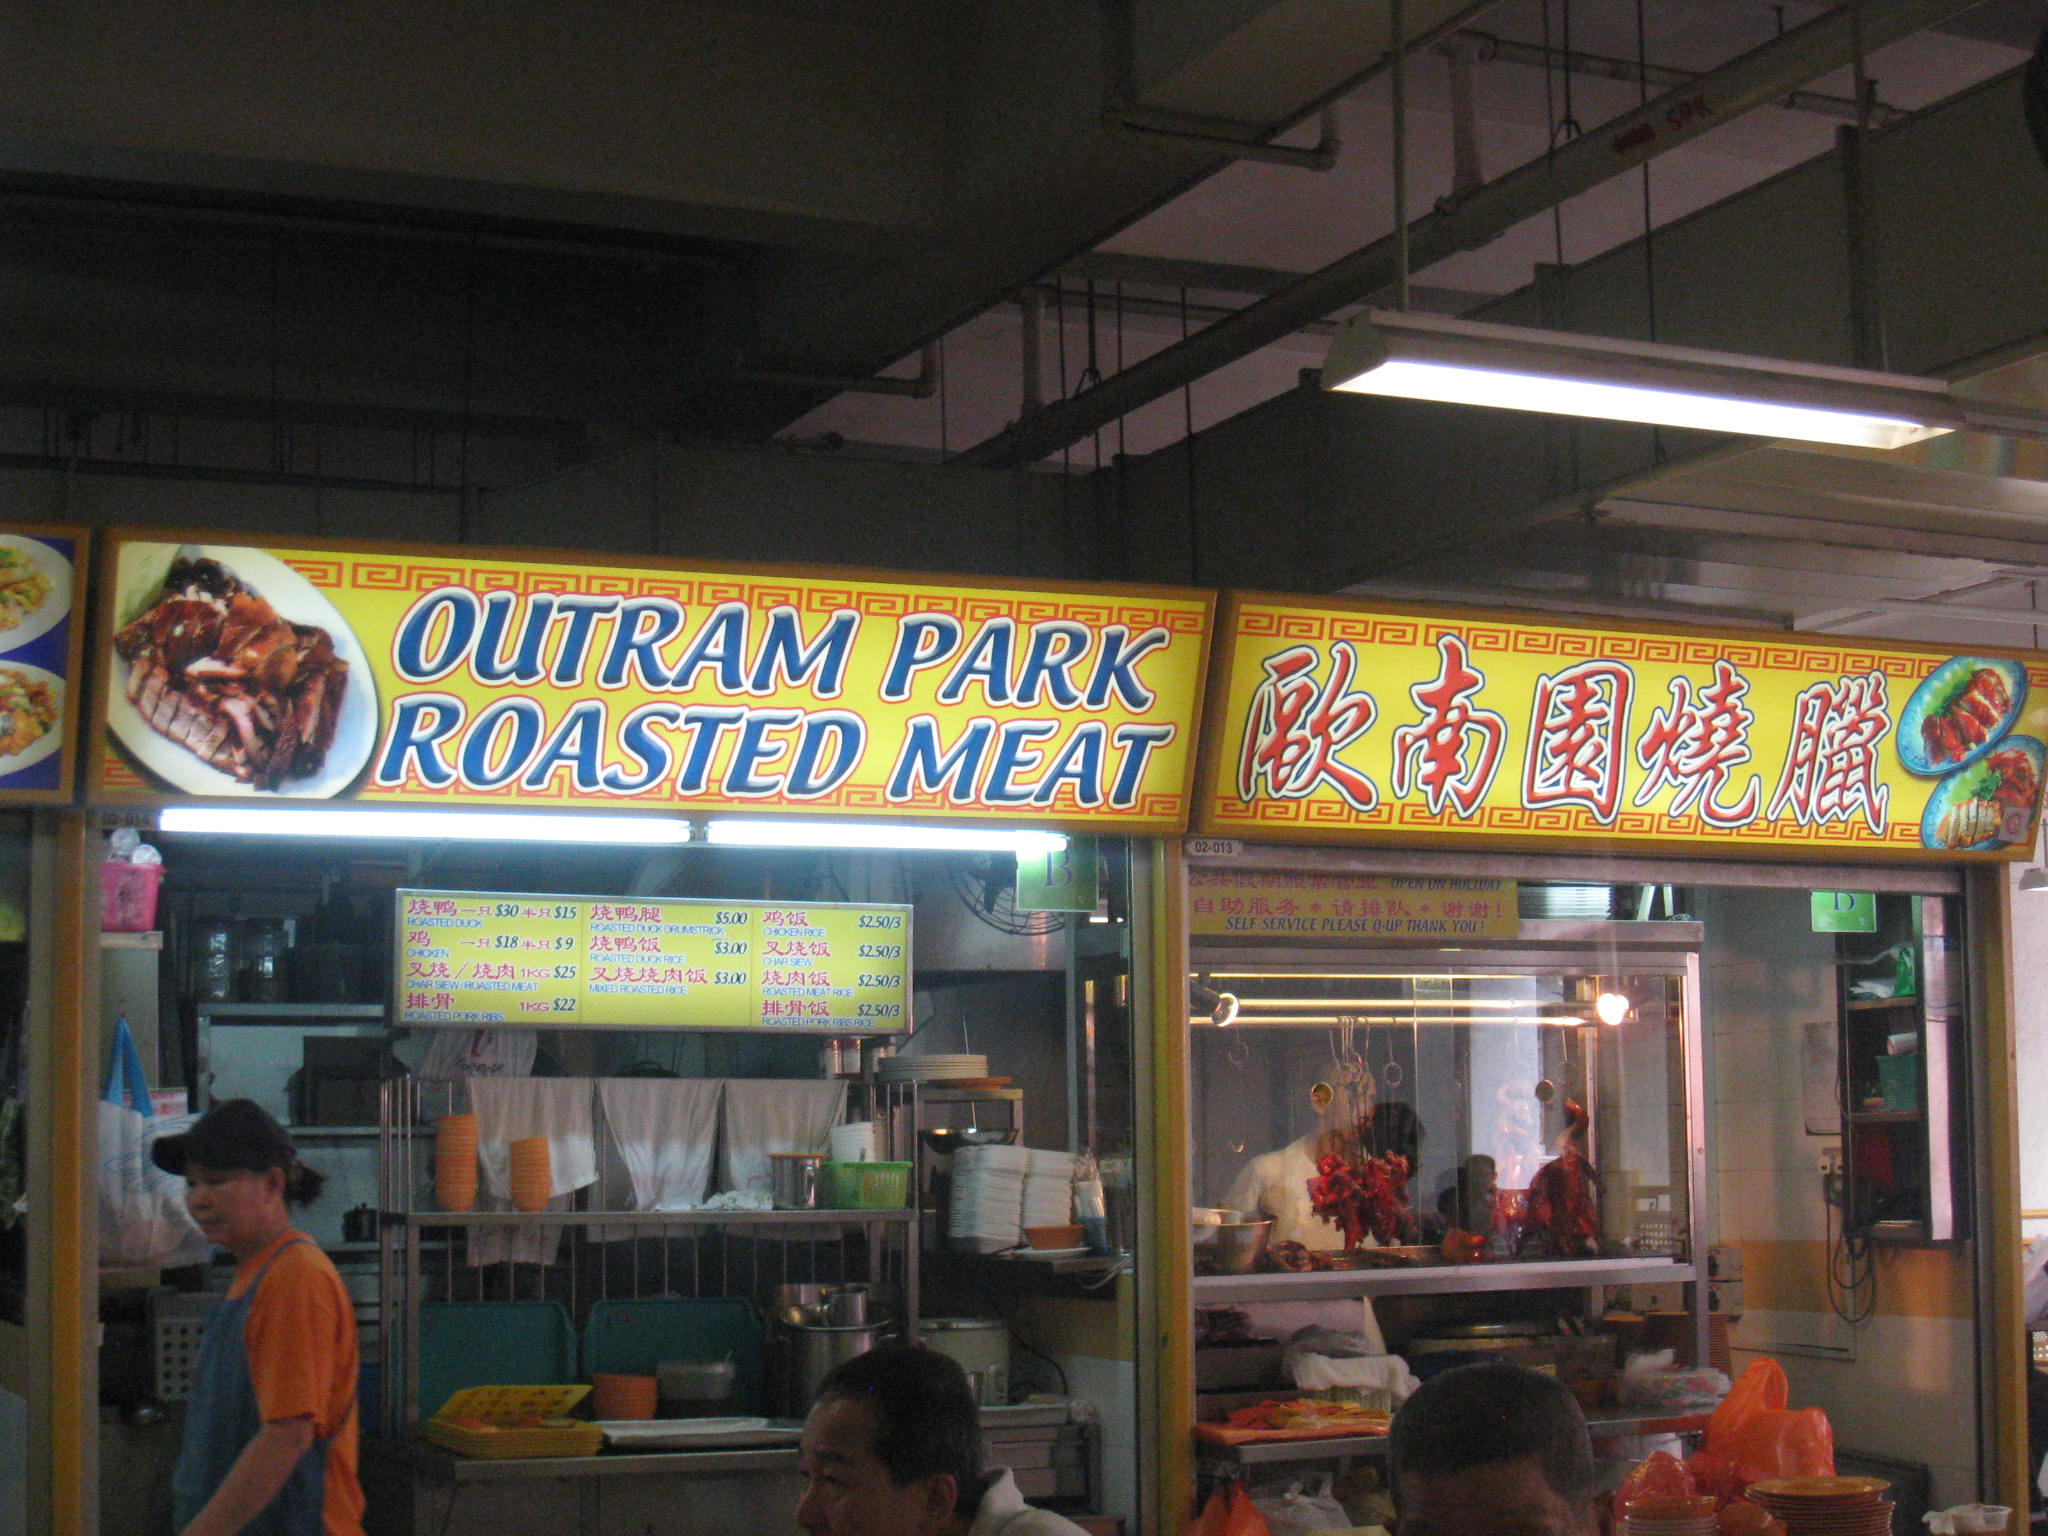 叉焼食べ比べ!@Outram Park Roasted Meat_c0212604_6115274.jpg